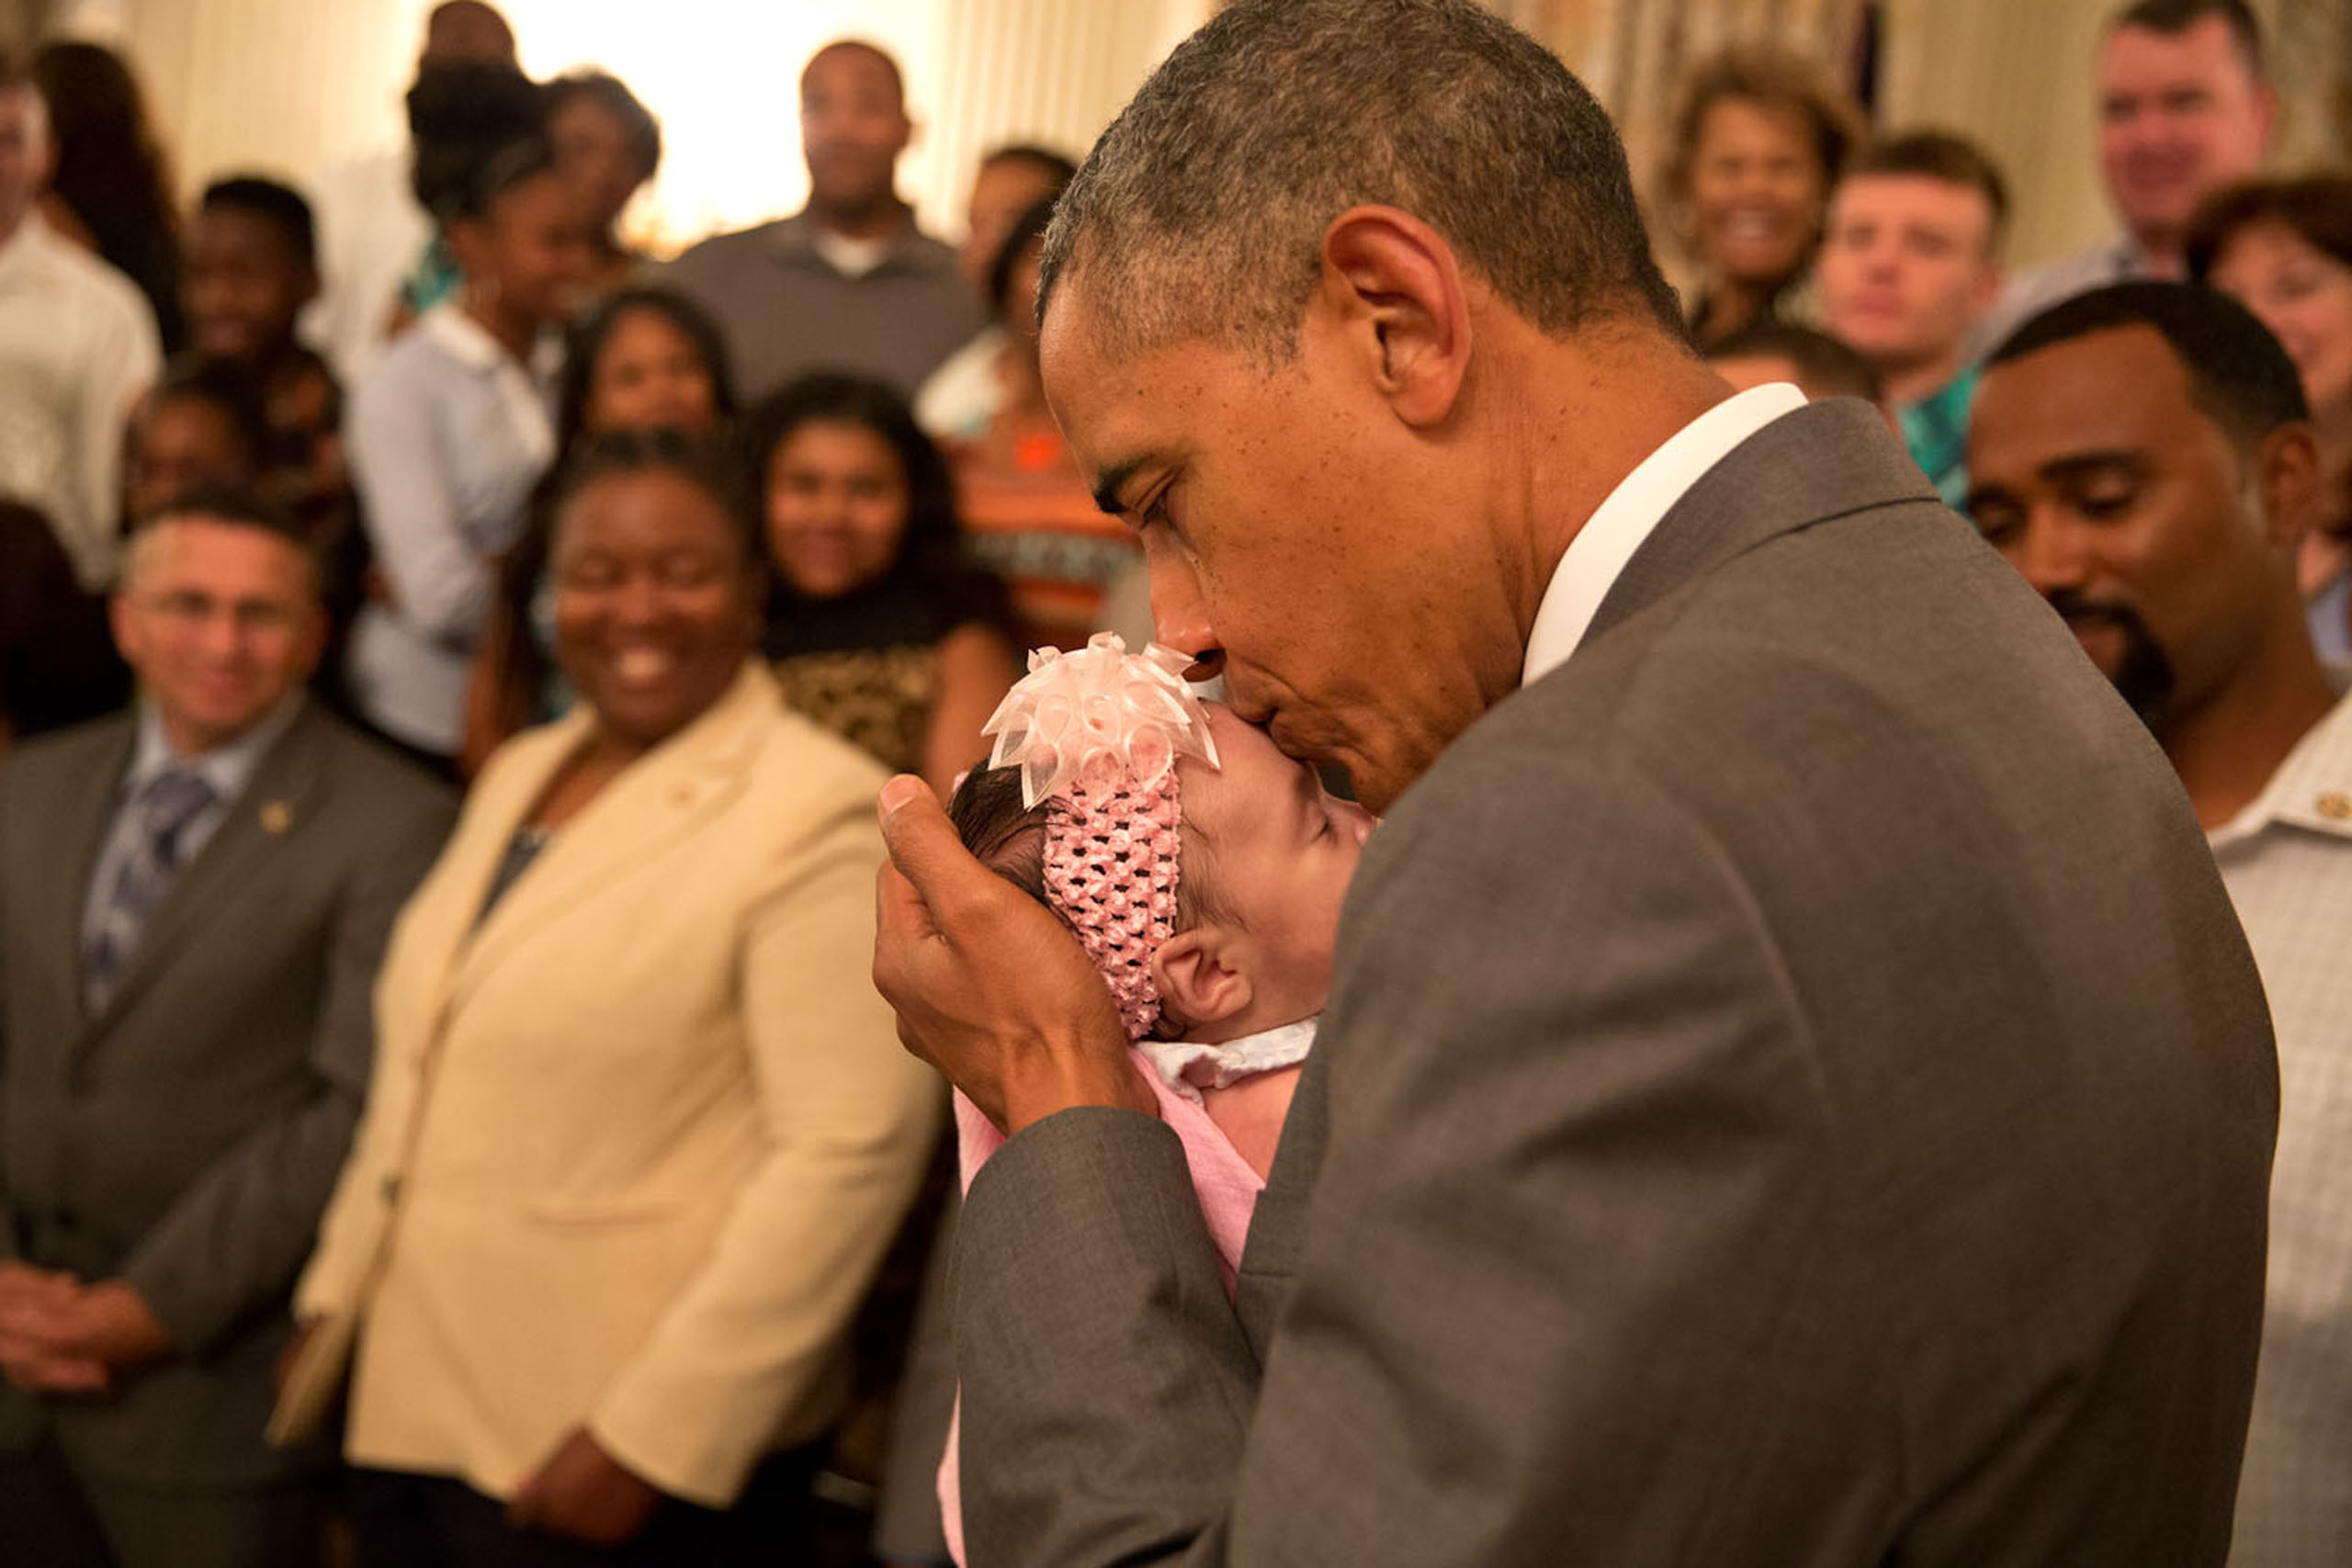 The President kisses a baby girl as he and the Vice President greeted wounded warriors and their families during their tour in the East Room of the White House on June 23, 2014.